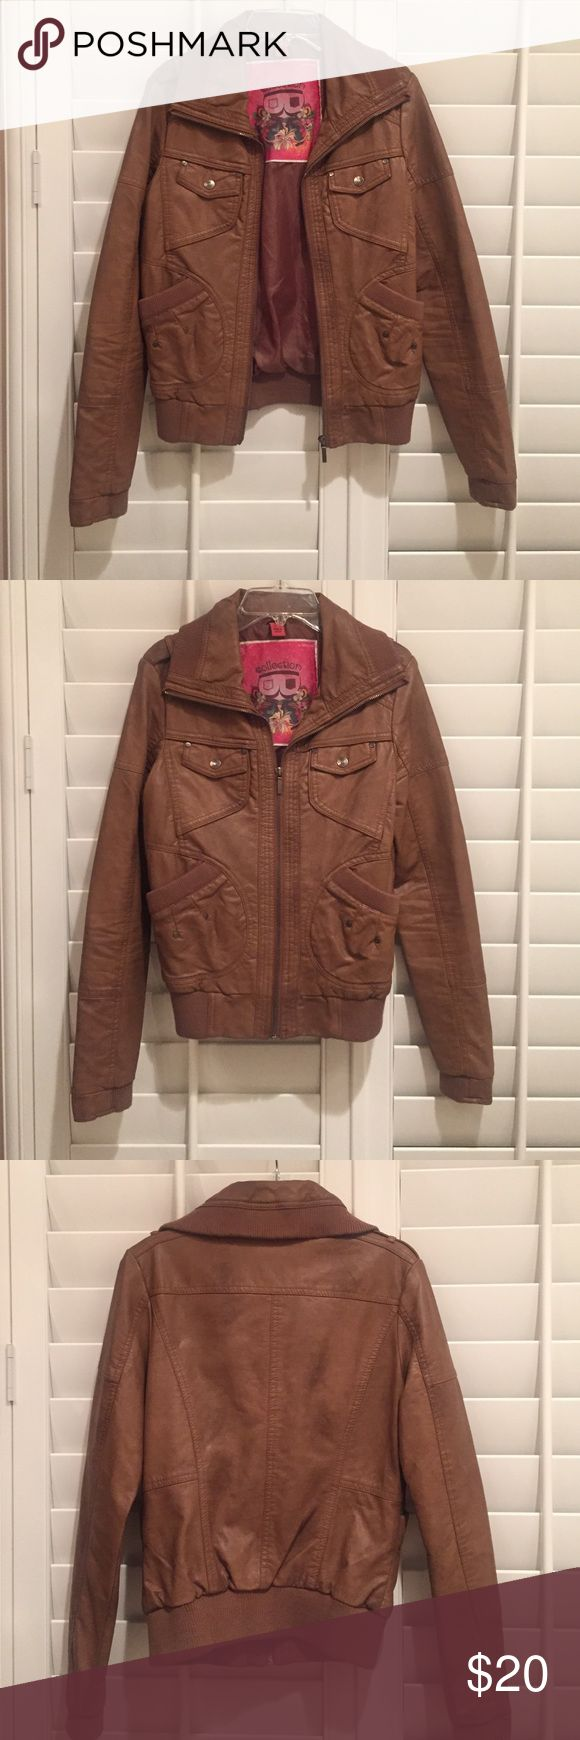 Tan Leather Jacket Super cute and stylish leather jacket with pockets. Jackets & Coats